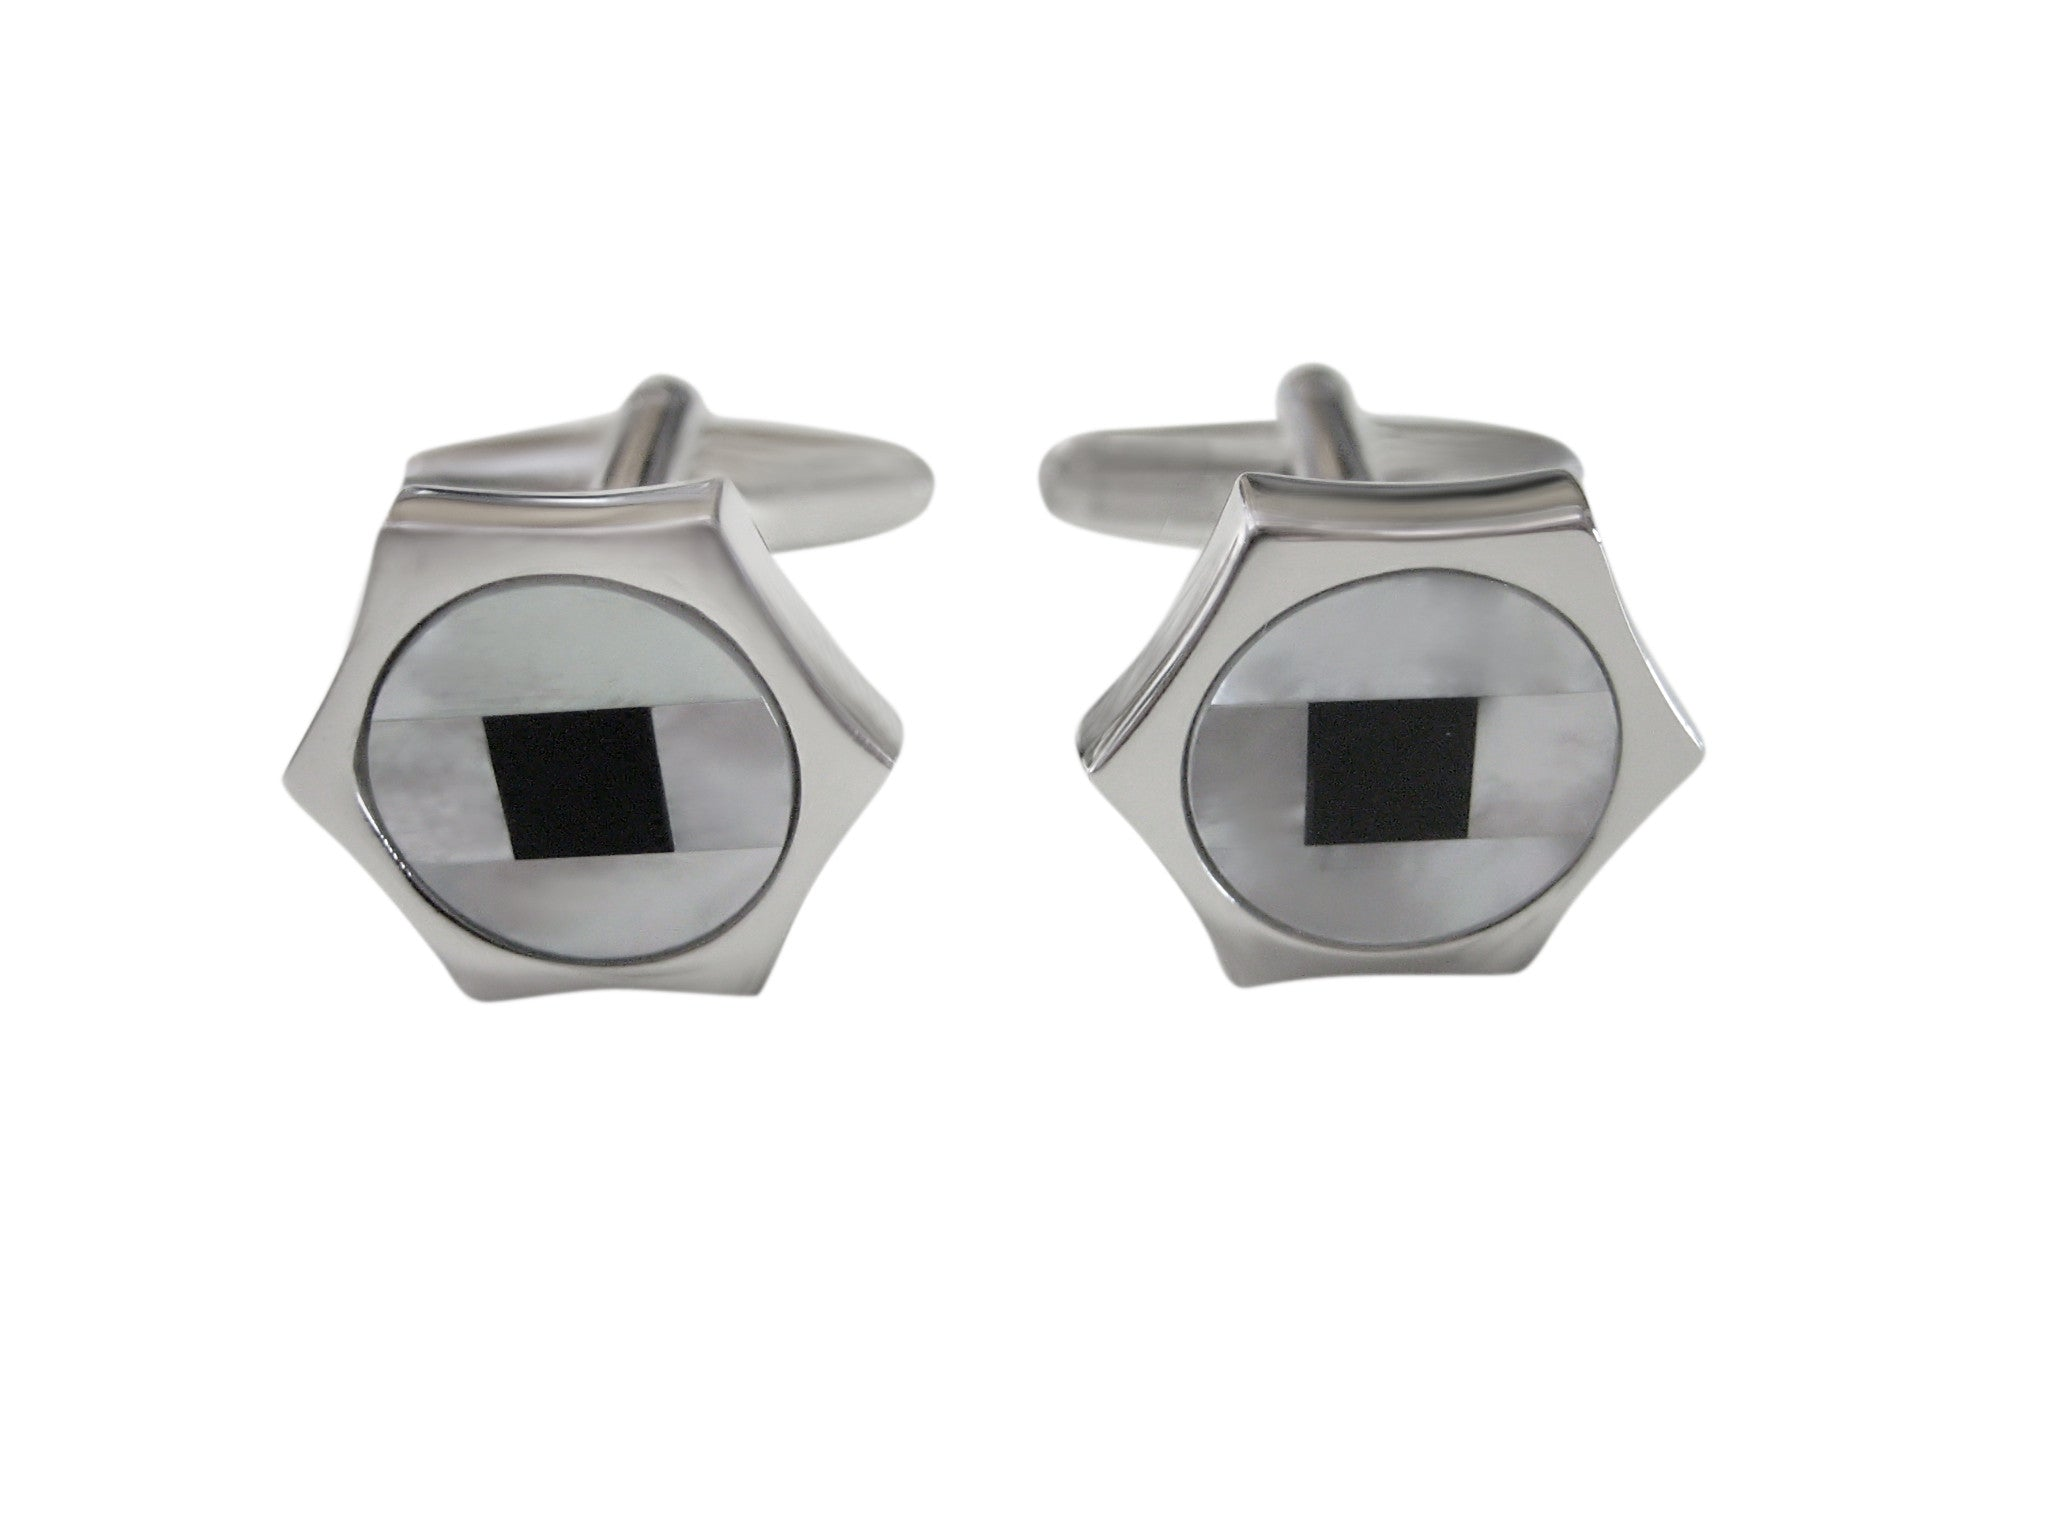 Hexagon Design Cufflinks with Black Square Center